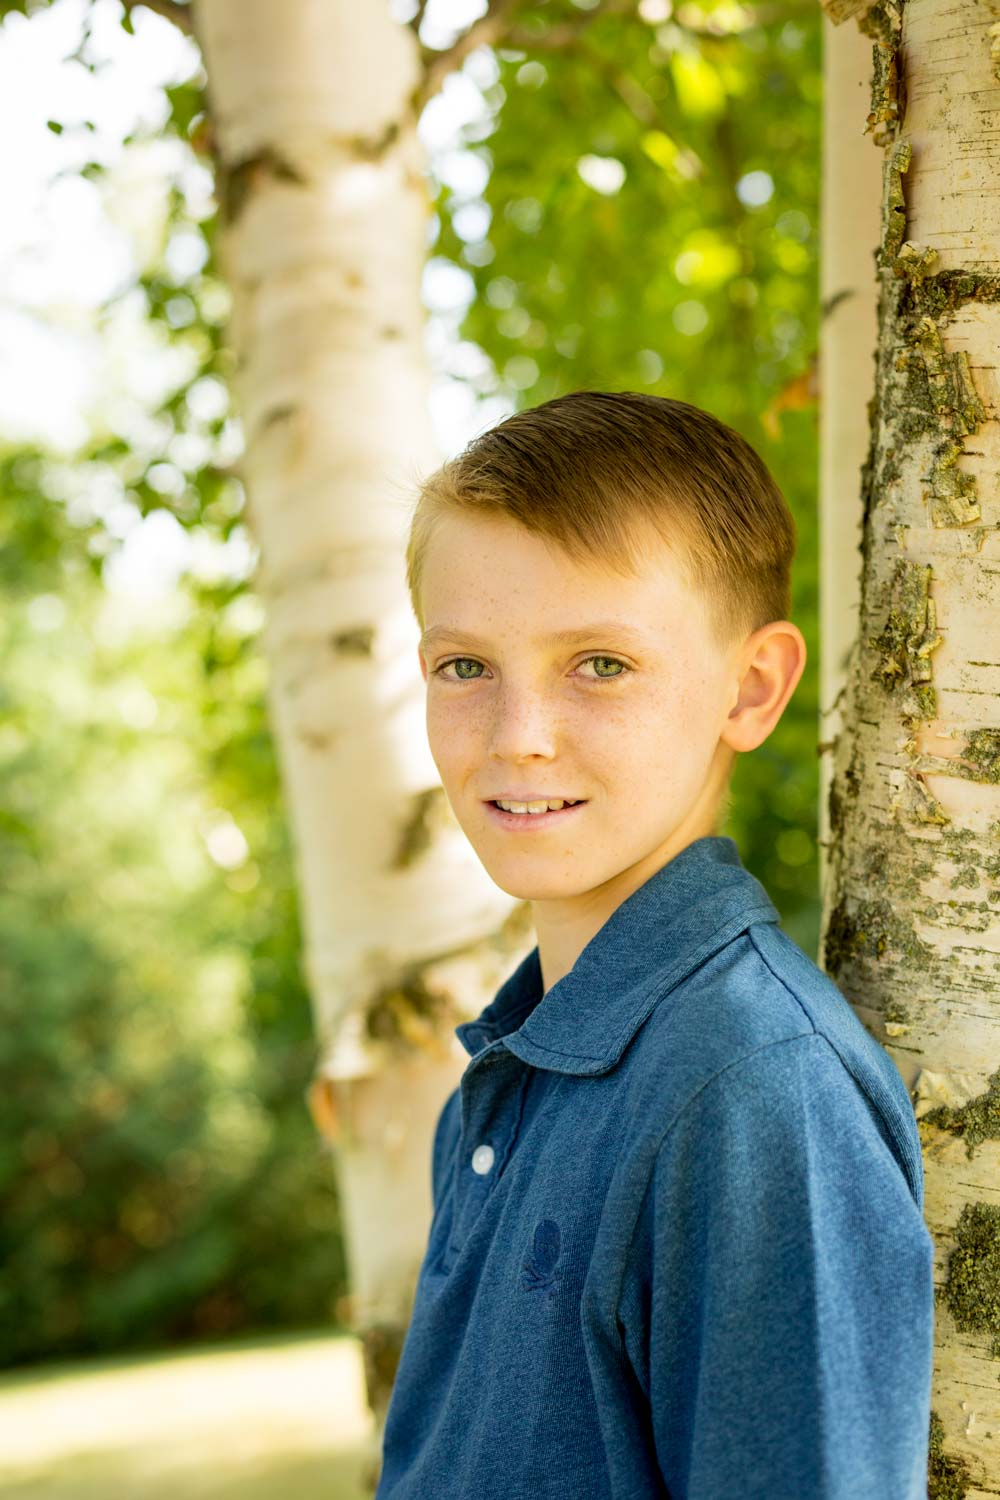 portrait of a boy by a tree - Tips for Preparing for a Portrait Session